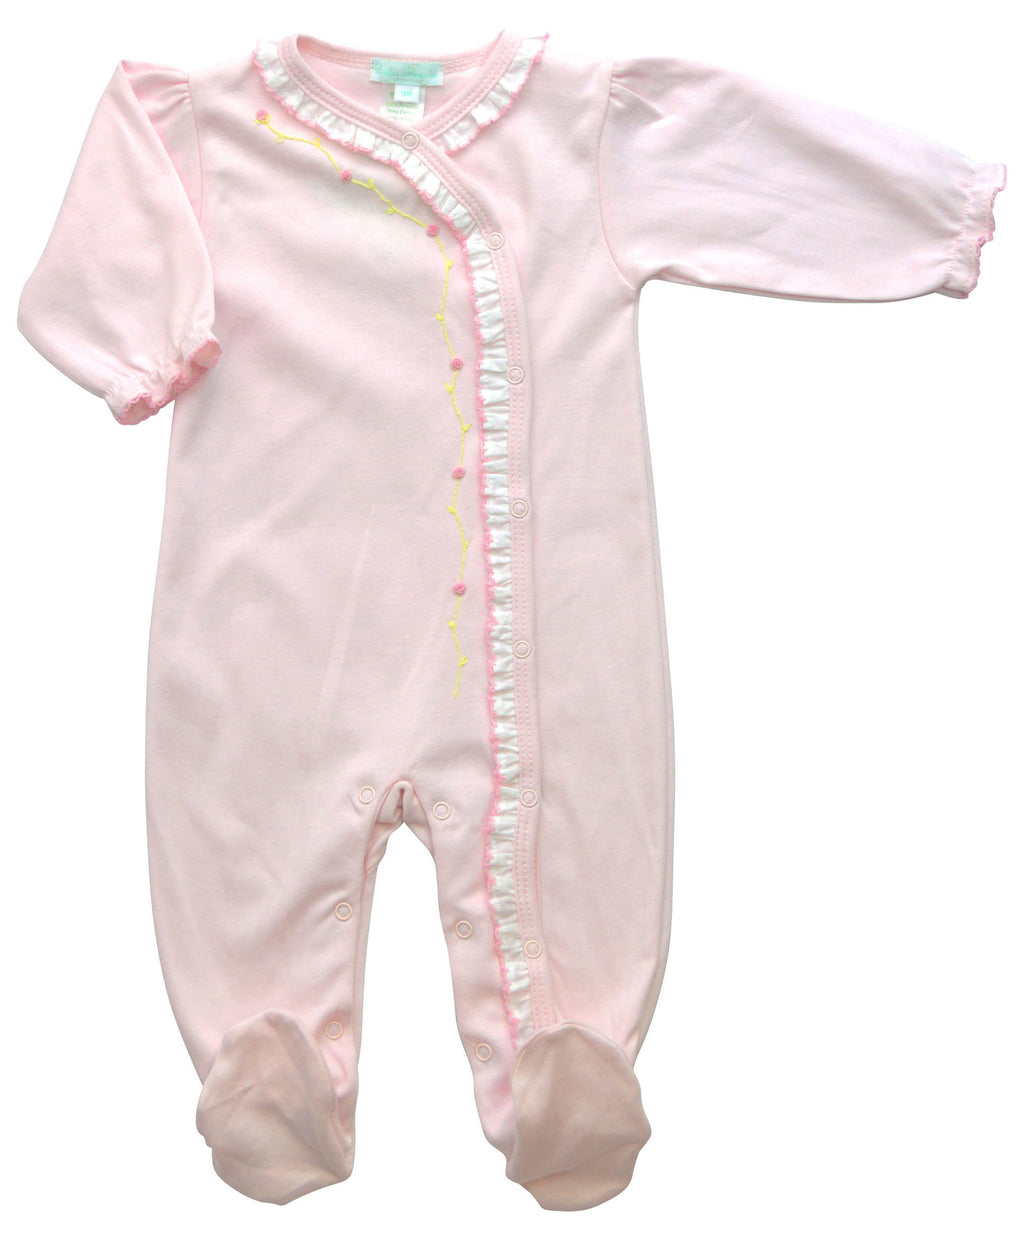 Eden Pink Baby Girl's Footie - Little Threads Inc. Children's Clothing